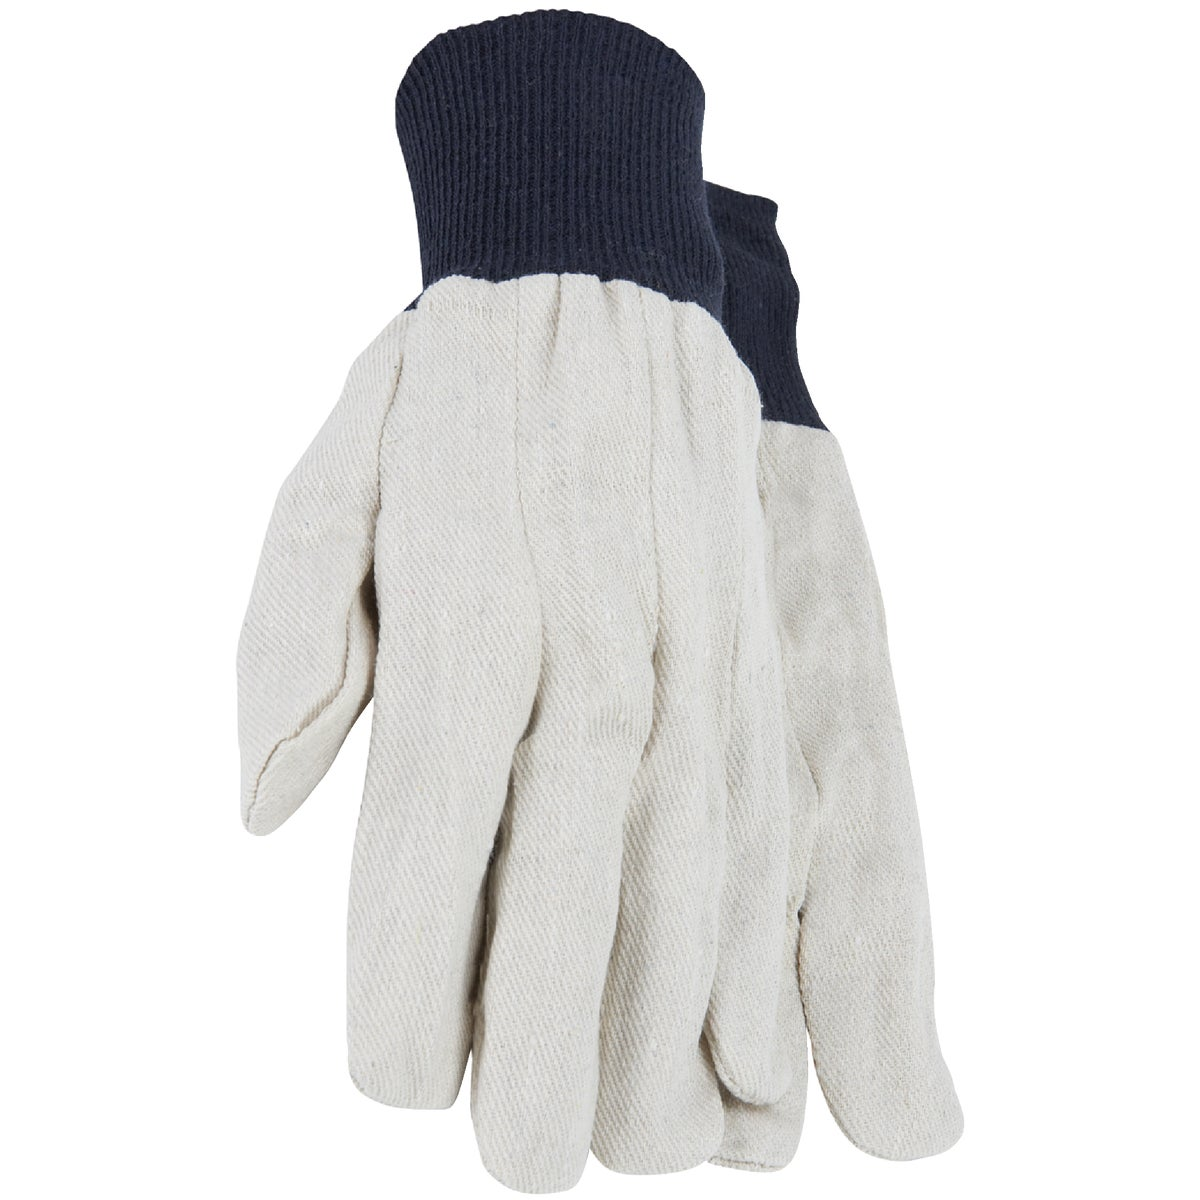 6PK CANVAS GLOVE - 747632 by Do it Best